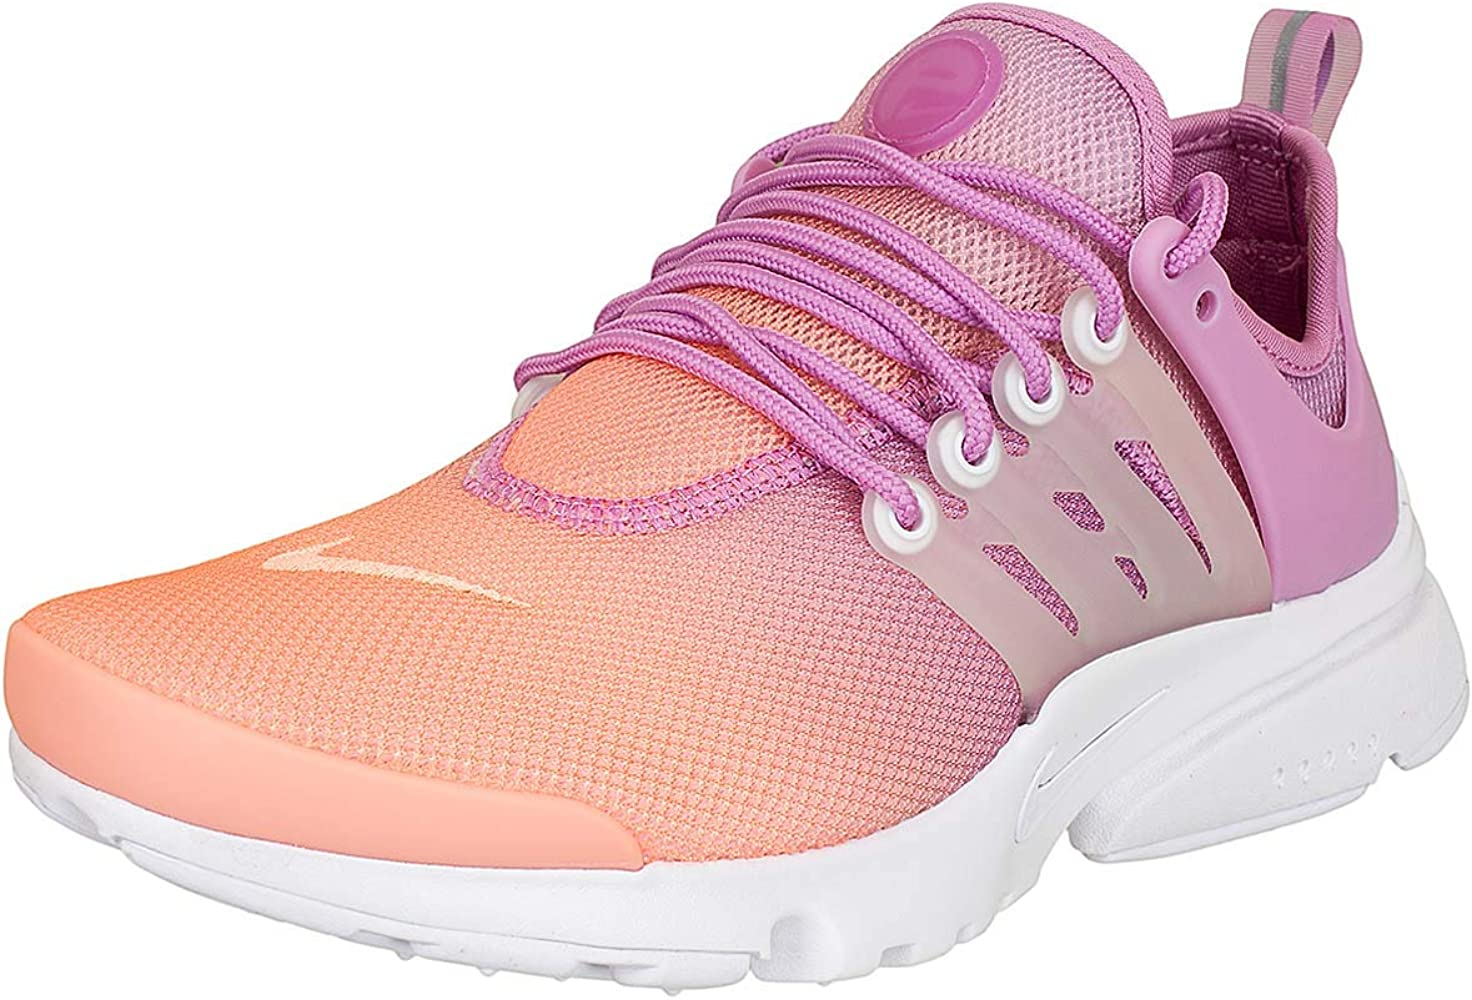 lower price with classic style beauty Nike Air Presto Ultra Breeze Women Sneaker Trainer 896277 ...